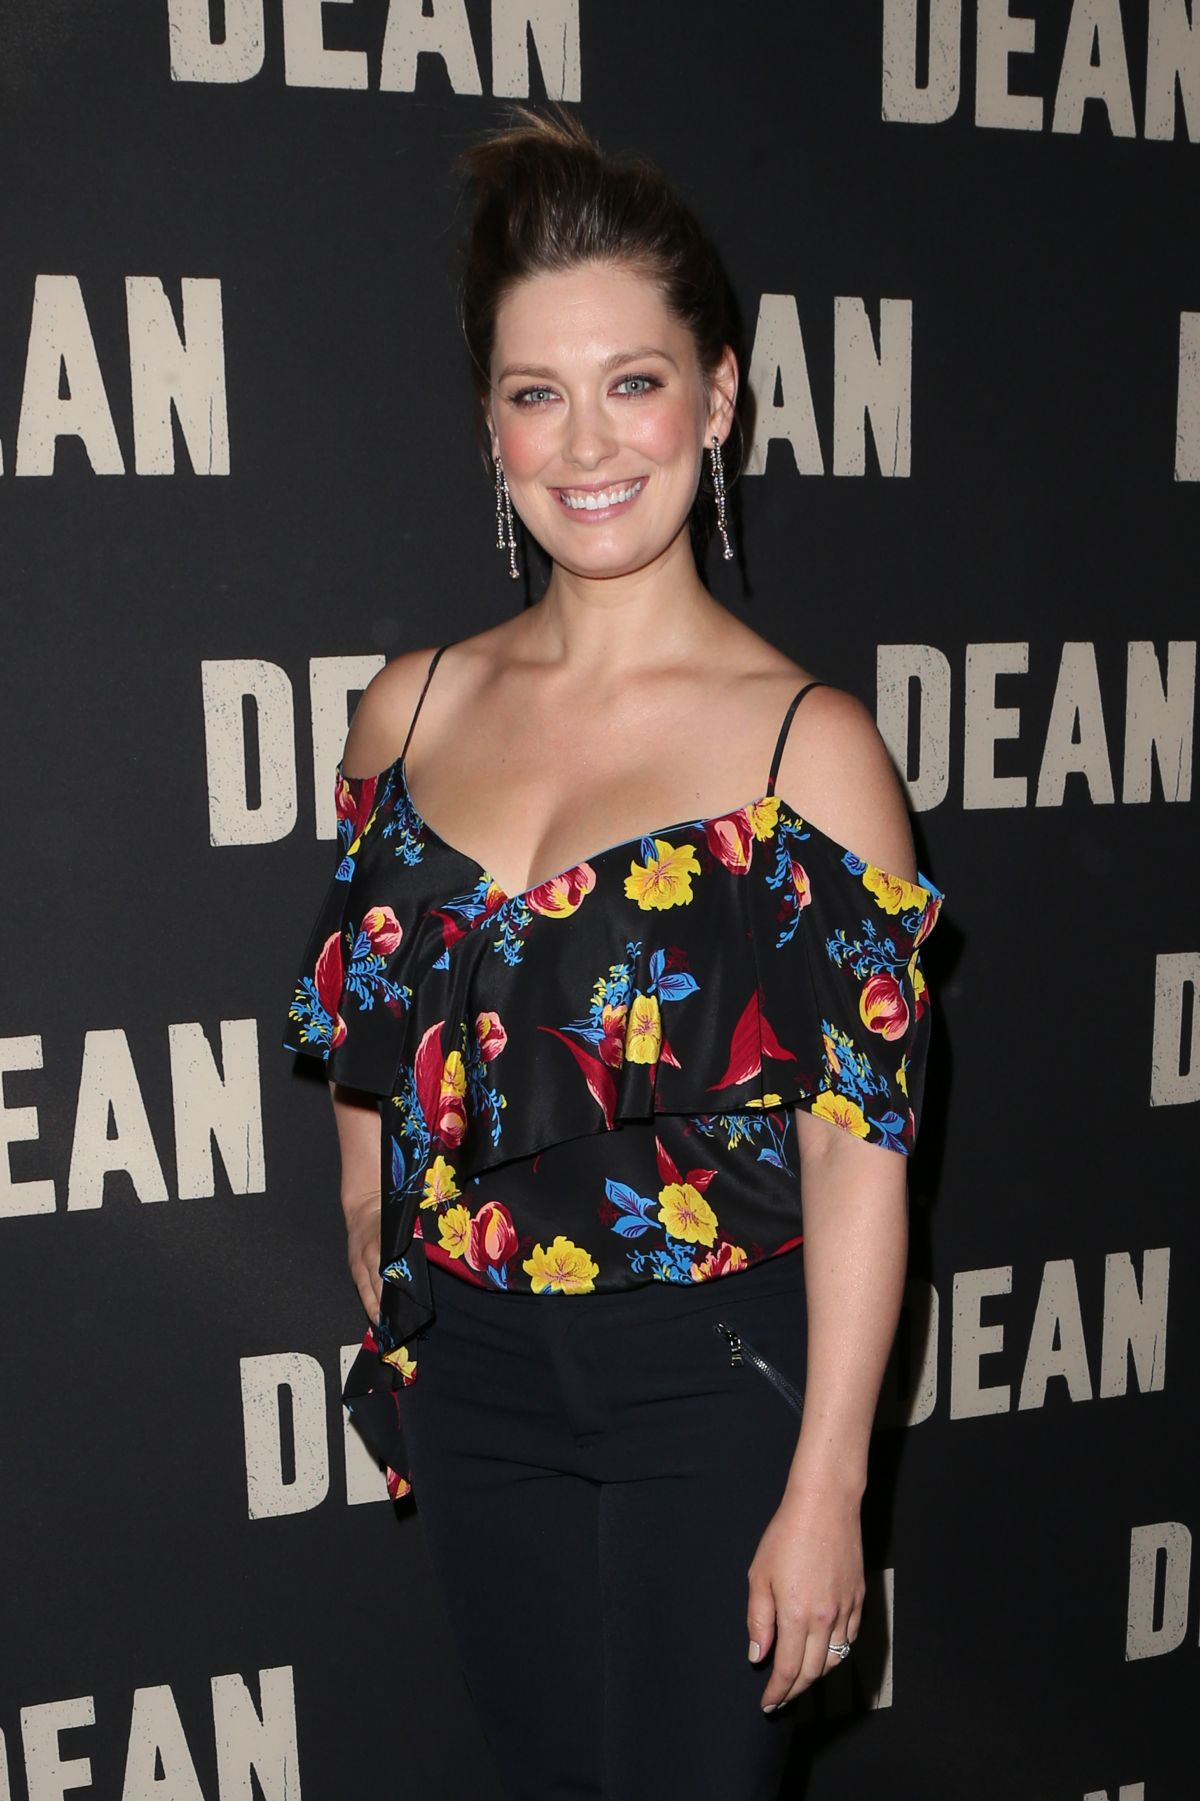 BRIGA HEELAN at Dean Premiere in Los Angeles 05/24/2017